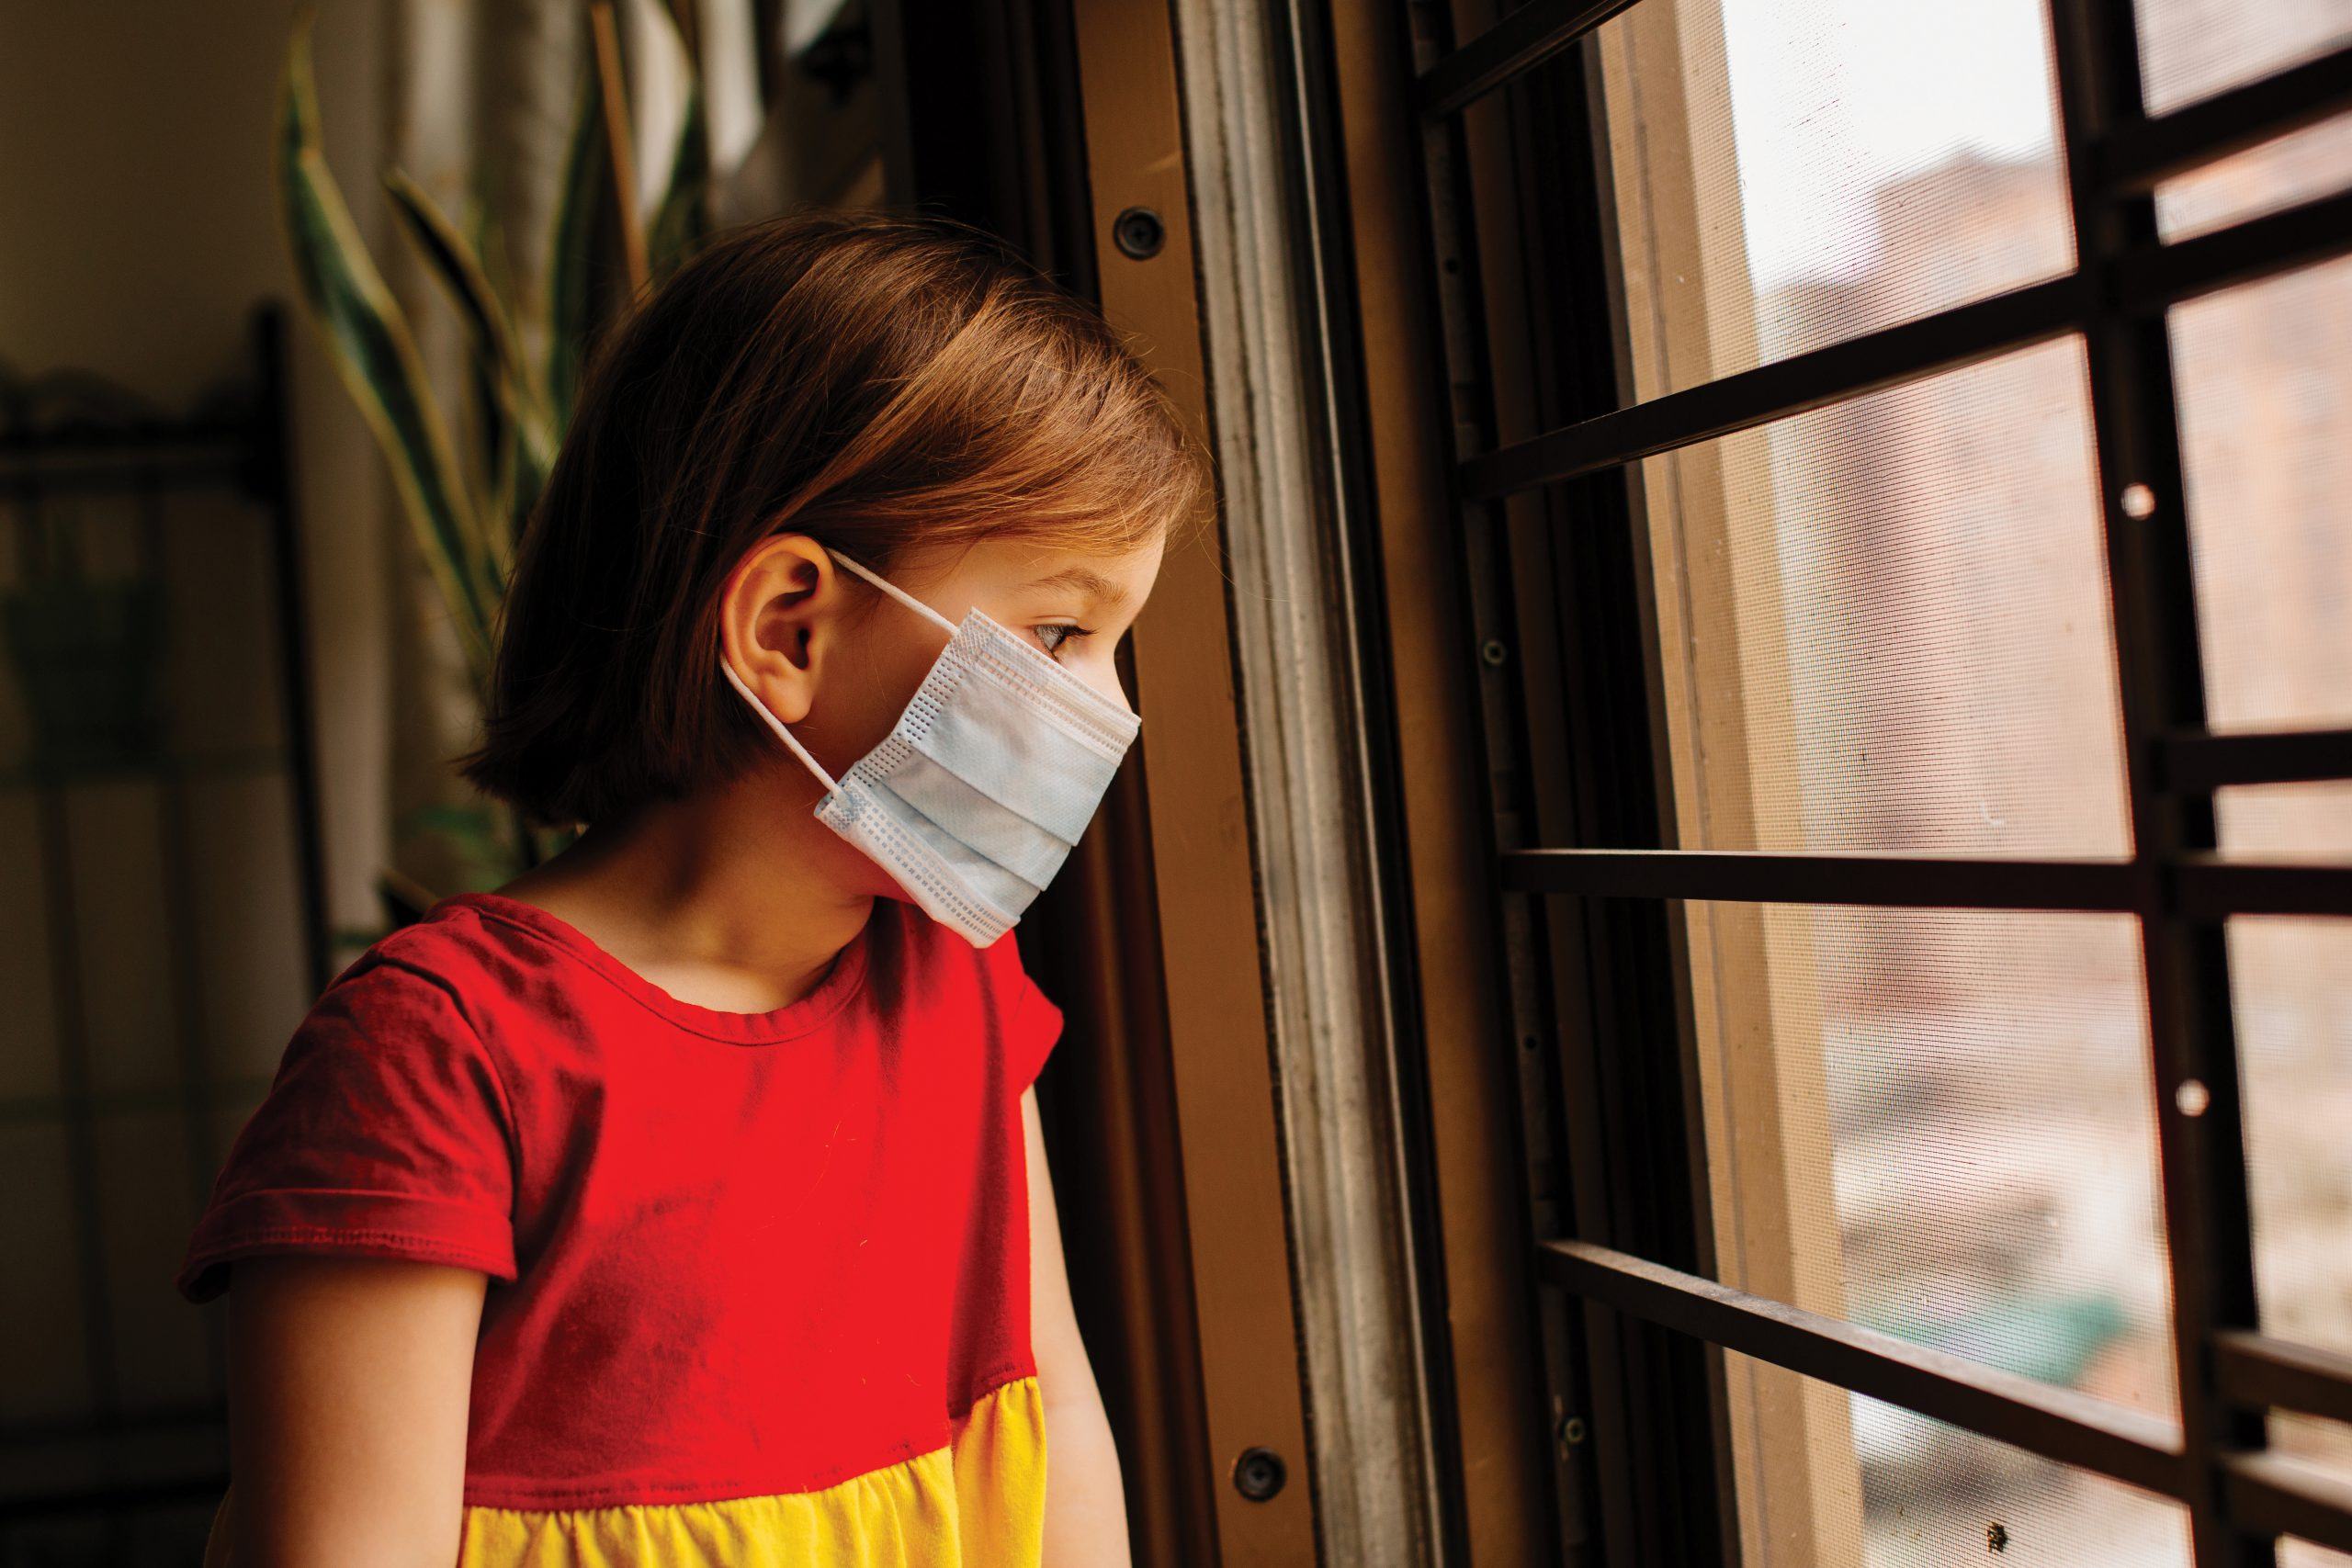 Kids, Grief, and the COVID-19 Virus